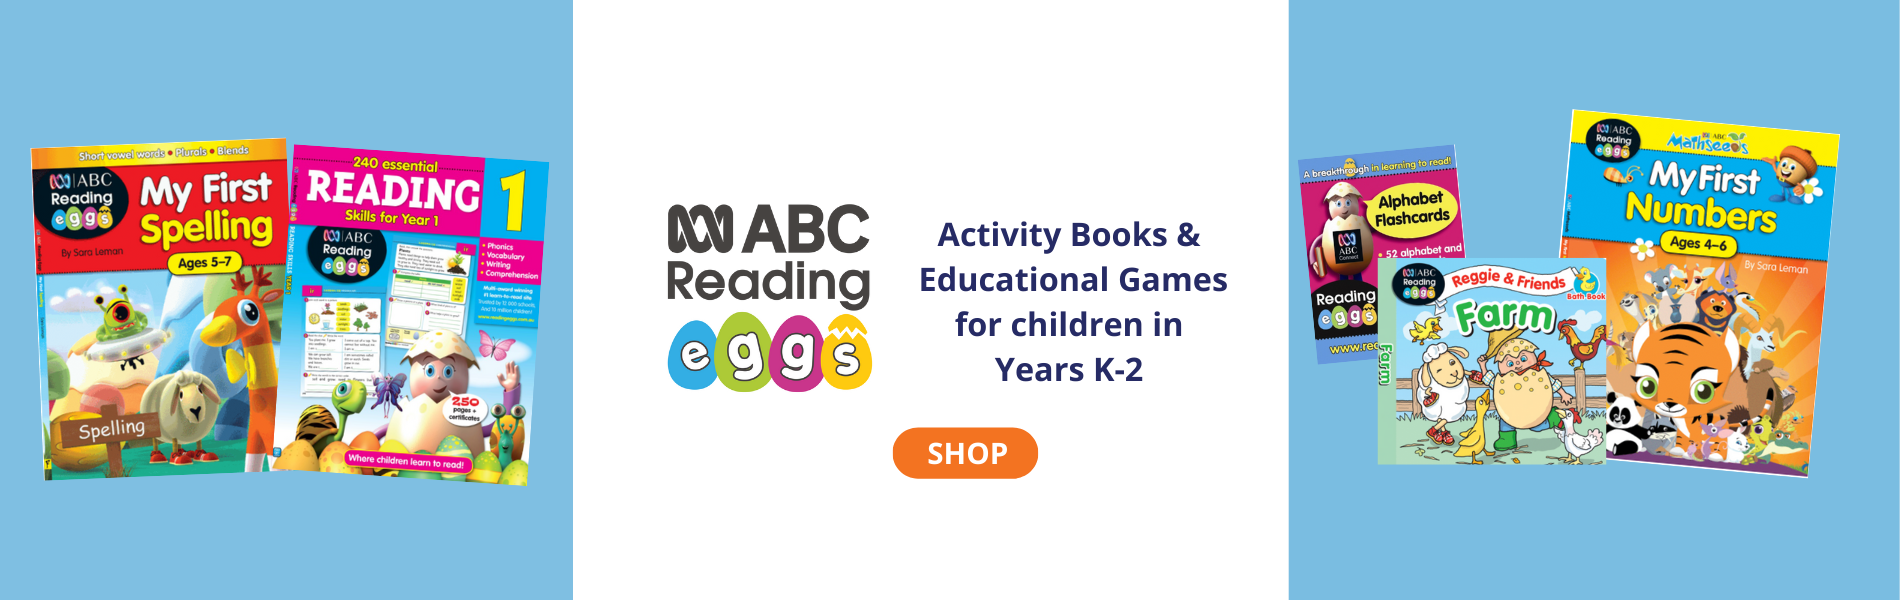 ABC Reading Eggs Activity Books and Educational Games for children in Years K-2